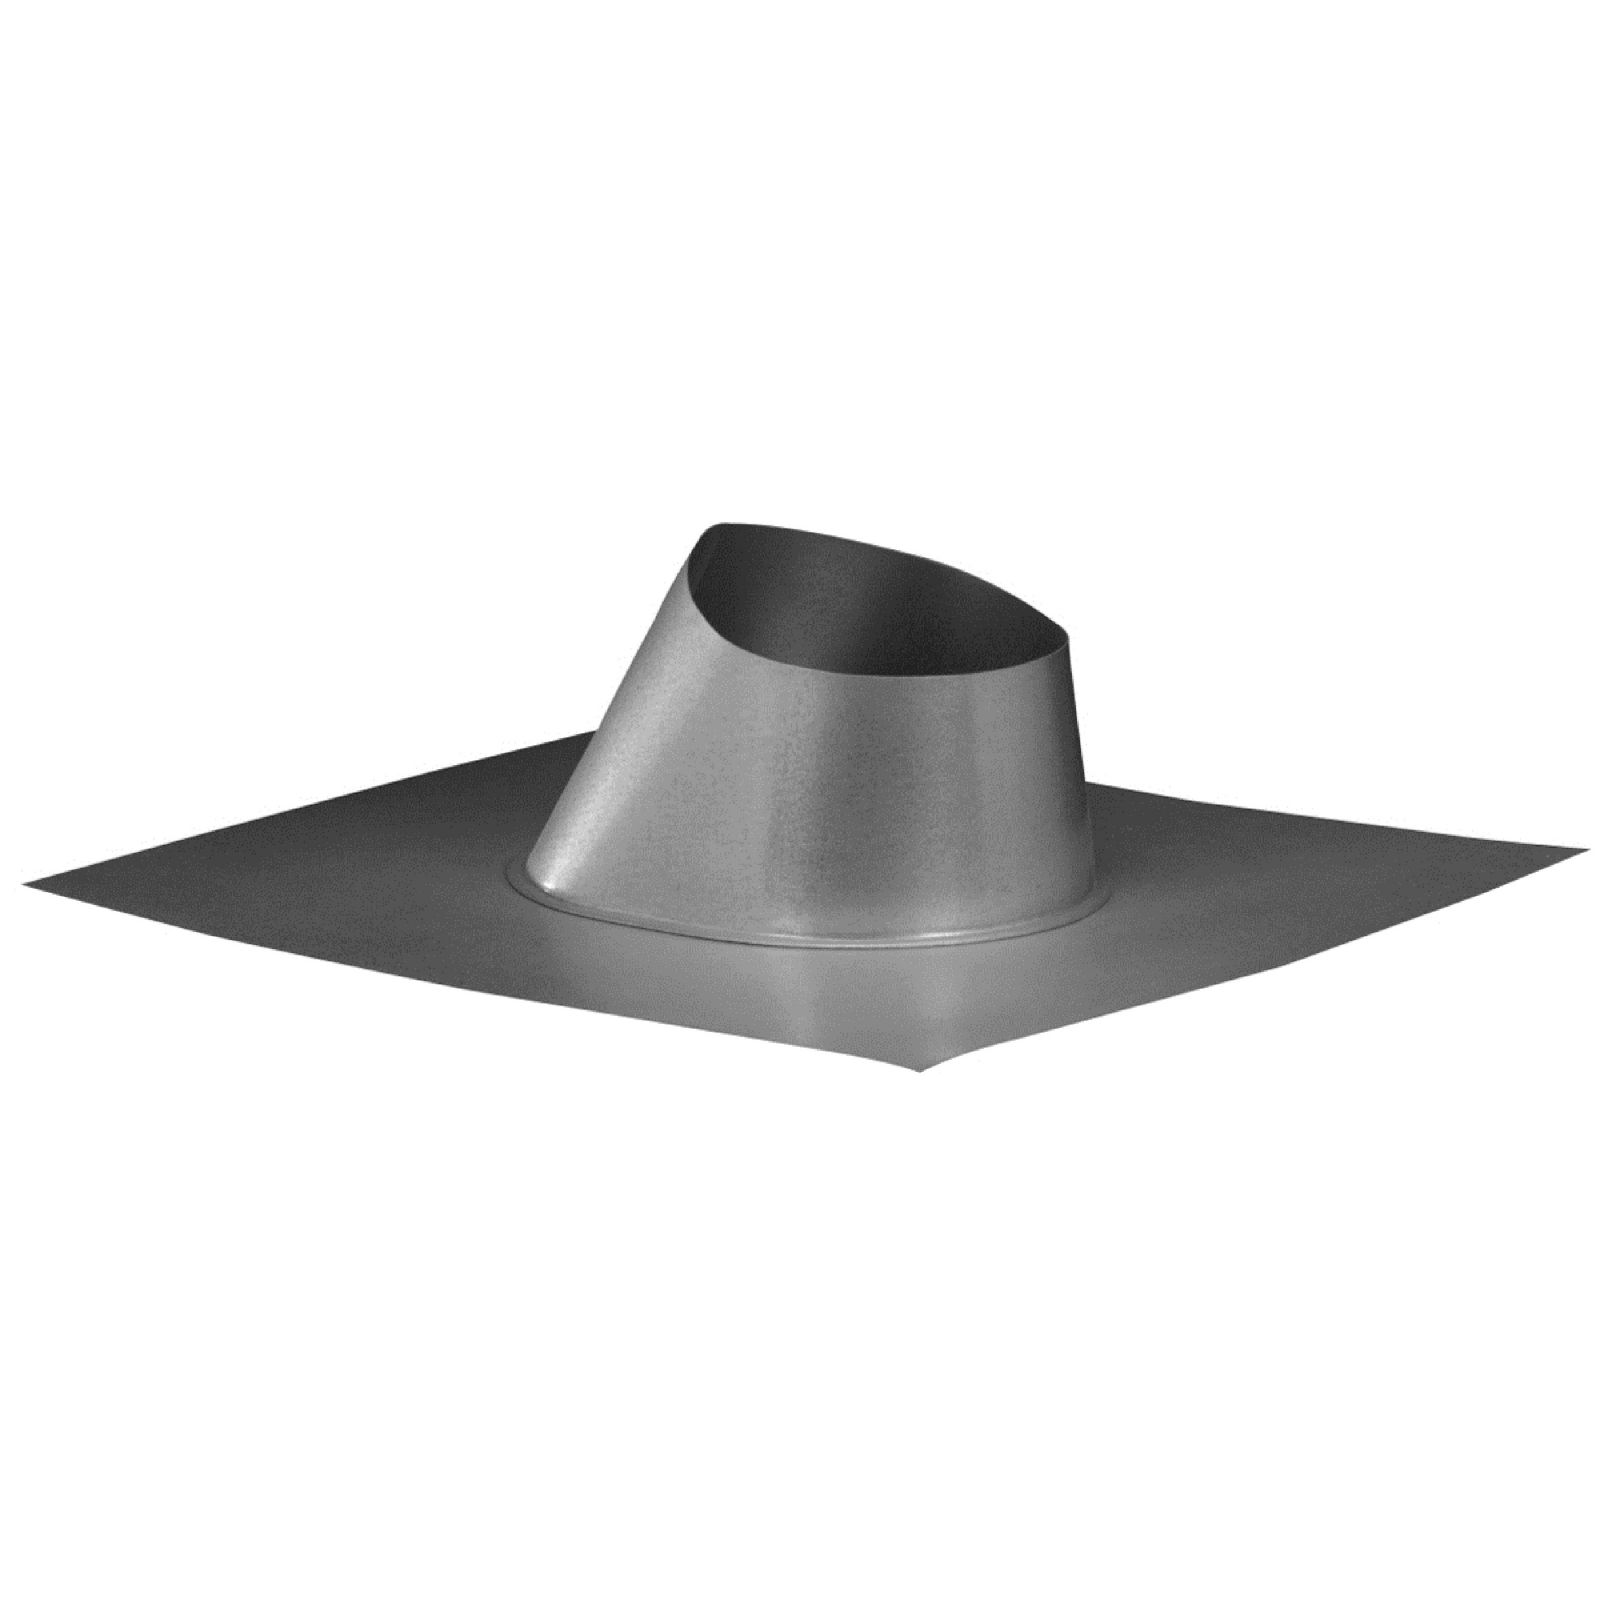 Hart & Cooley 016019 - Adjustable Roof Flashing (0 - 6/12 Pitch), 3""